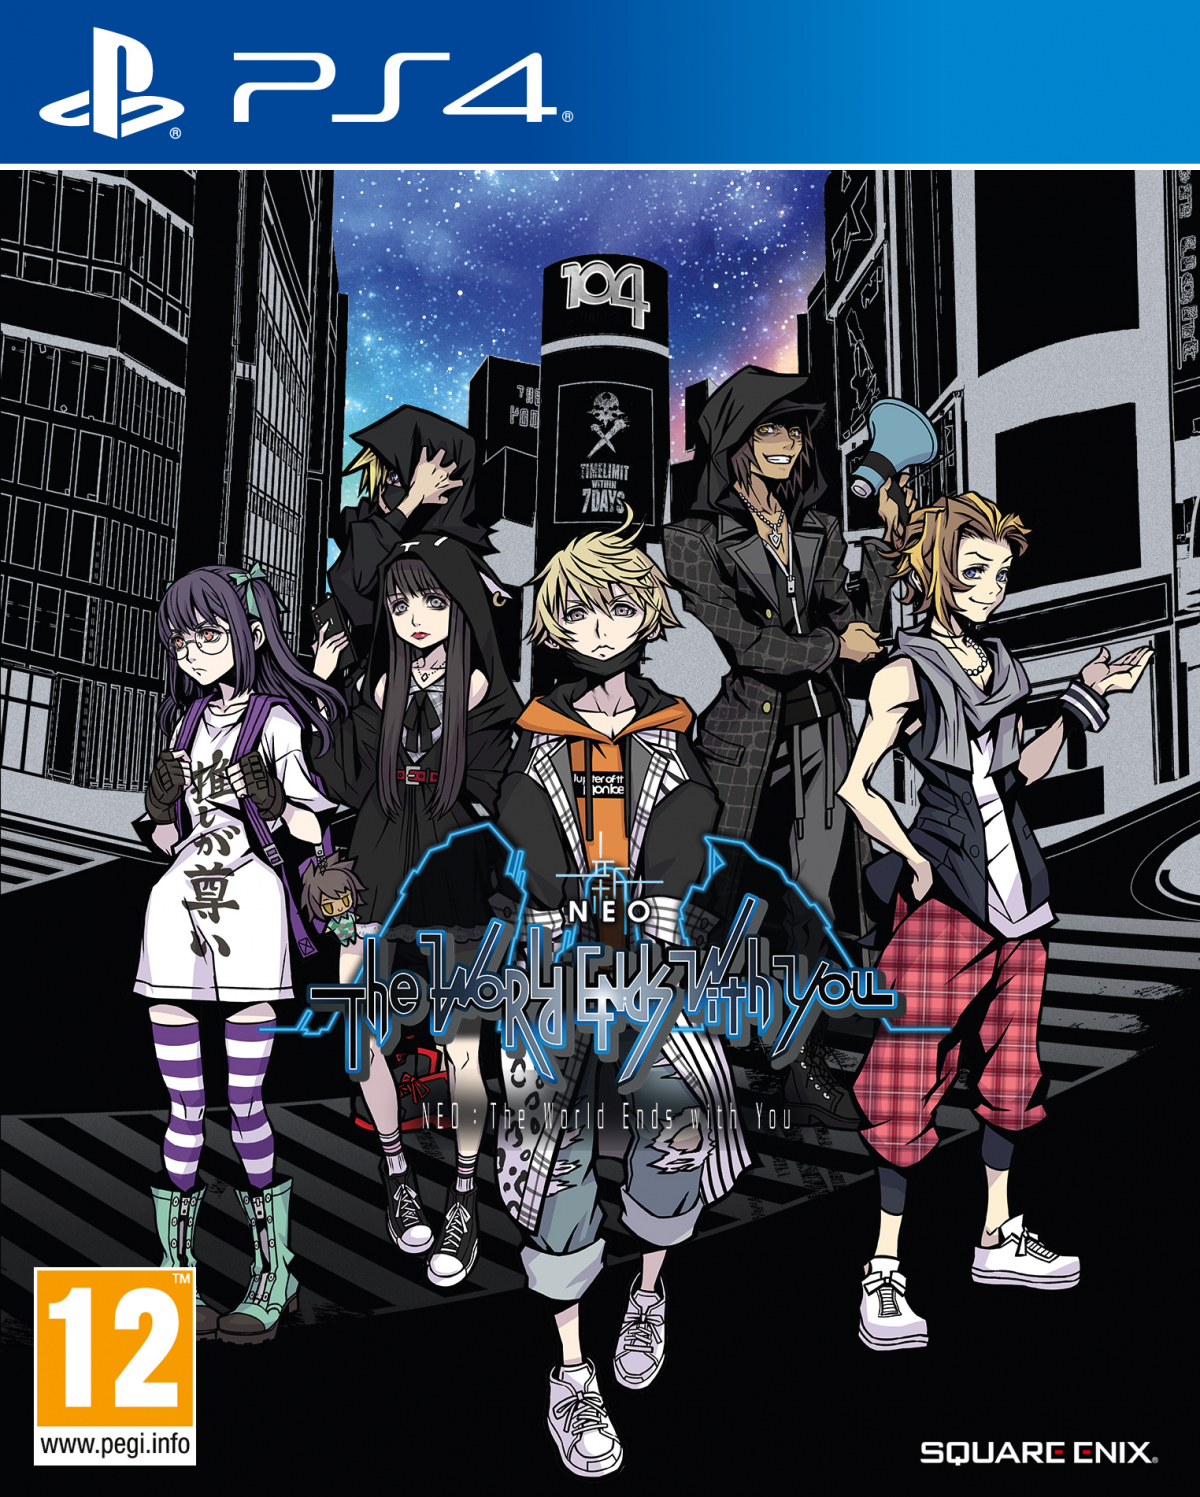 PS4 Neo: The World Ends With You